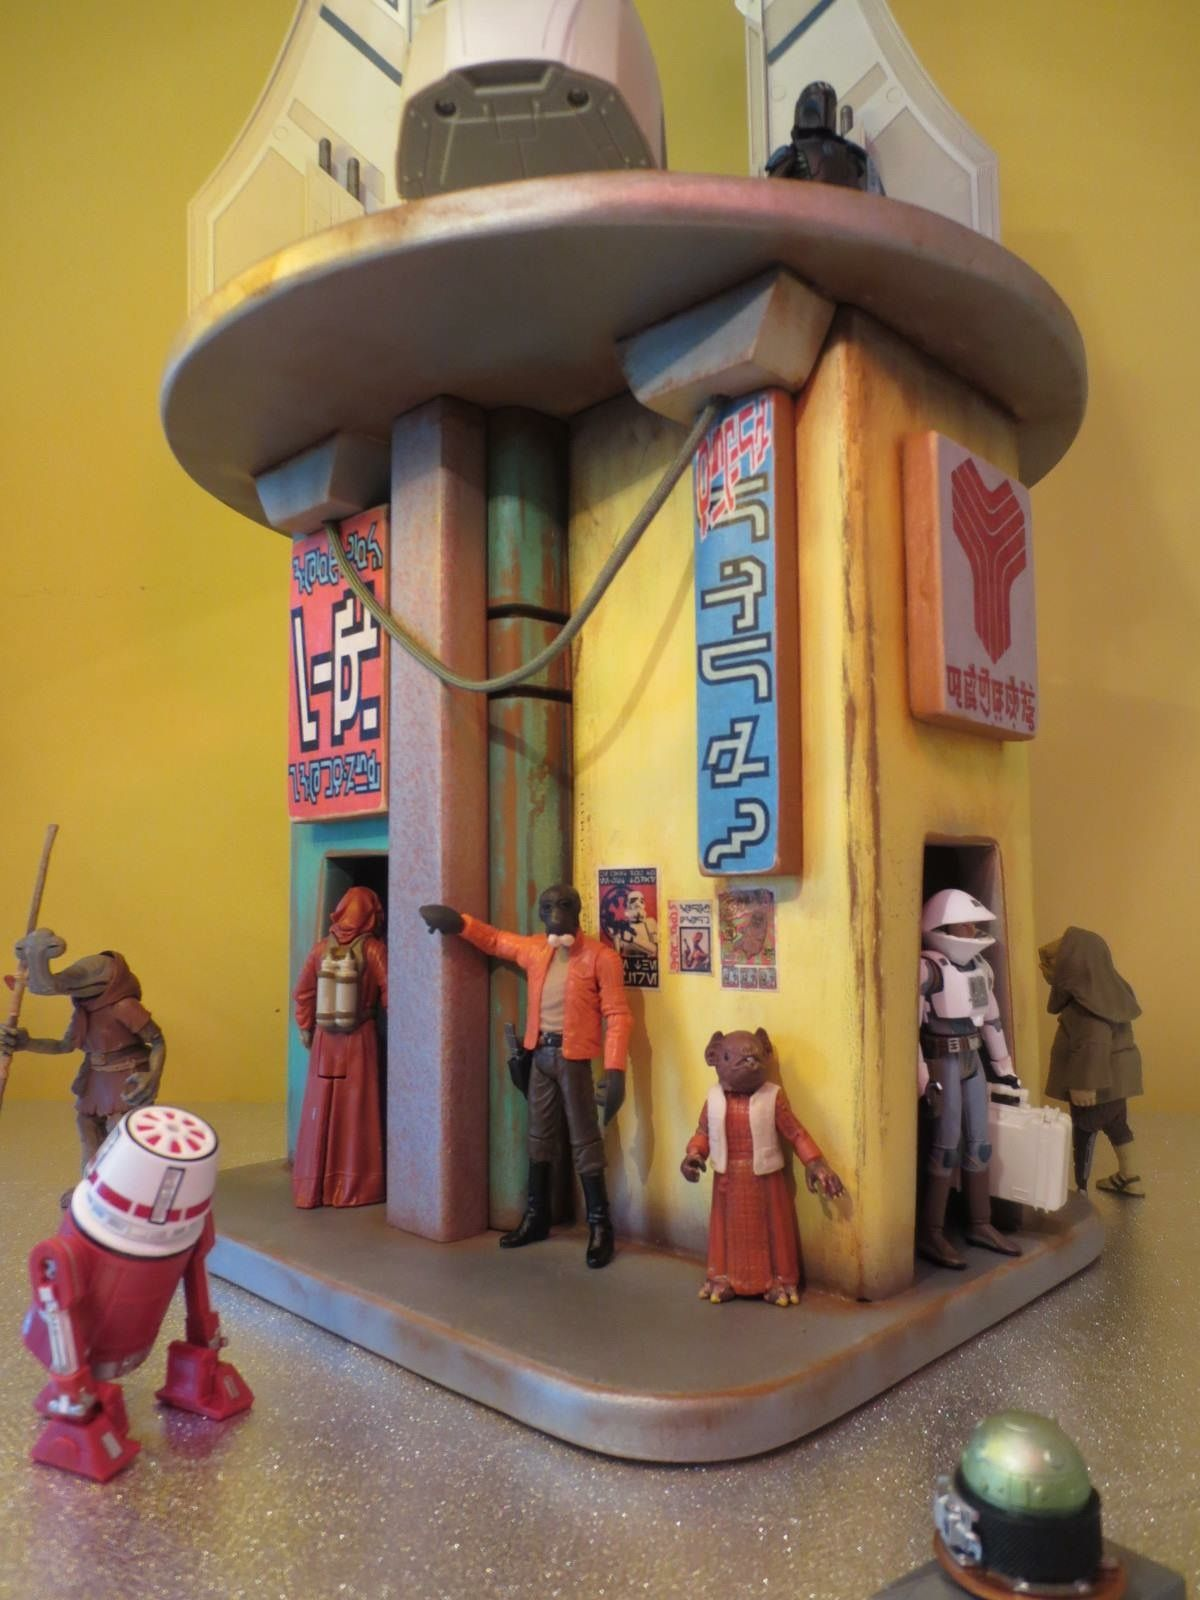 Pin by Ethan Halo on Dioramas and Doll Houses   Star Wars, Custom